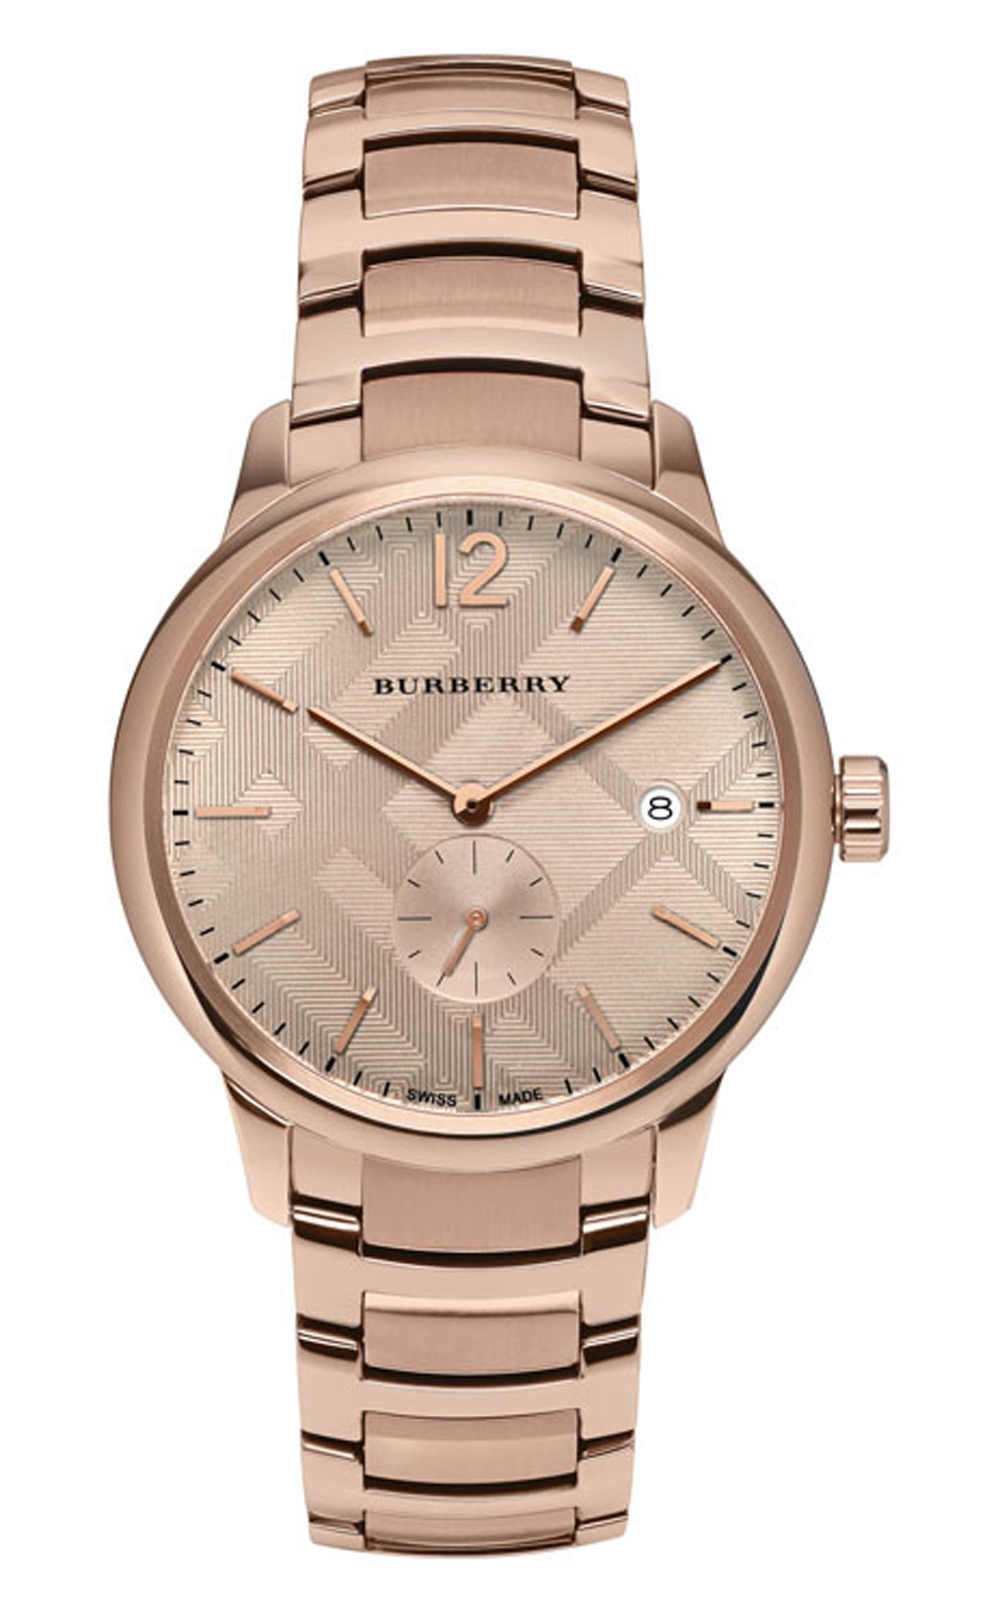 Burberry bu10013 The Classic Round Unisex Watch - $604.99